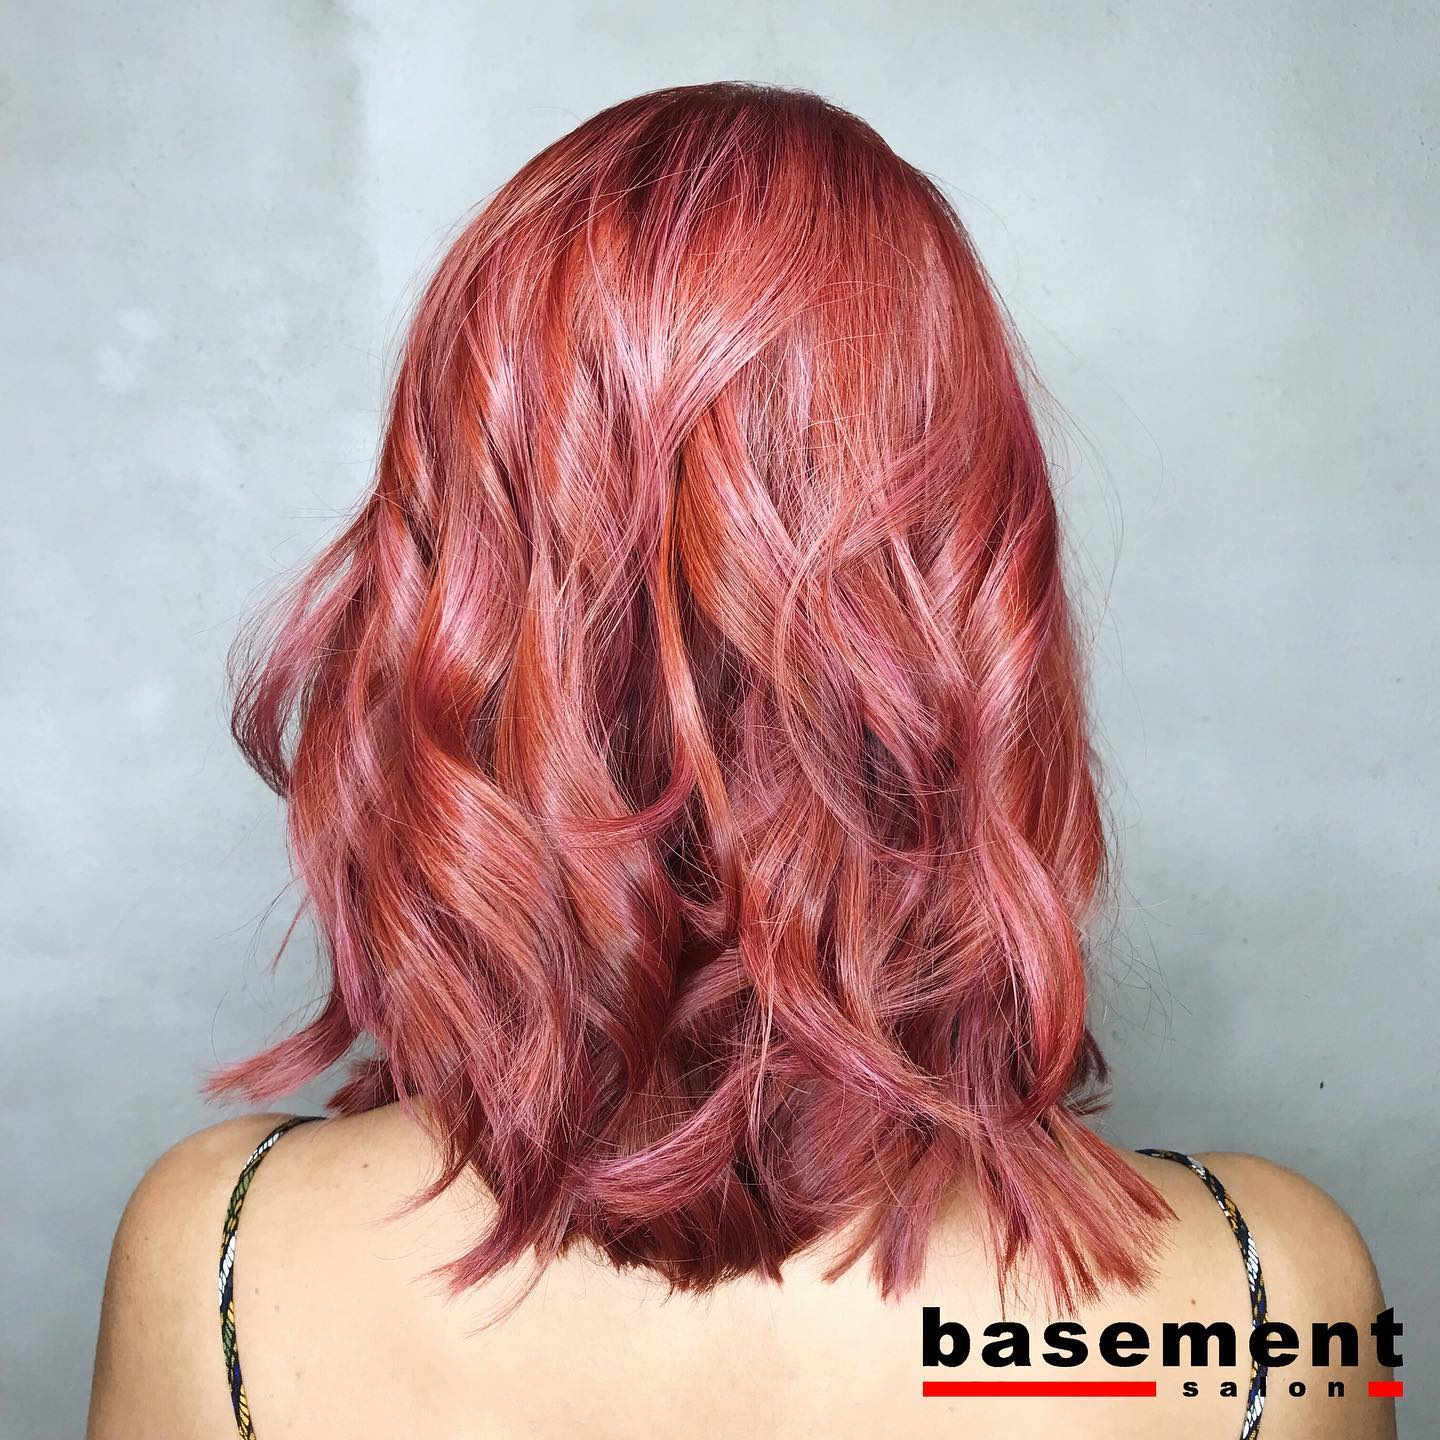 Summer Hair Trends: Fiery Color